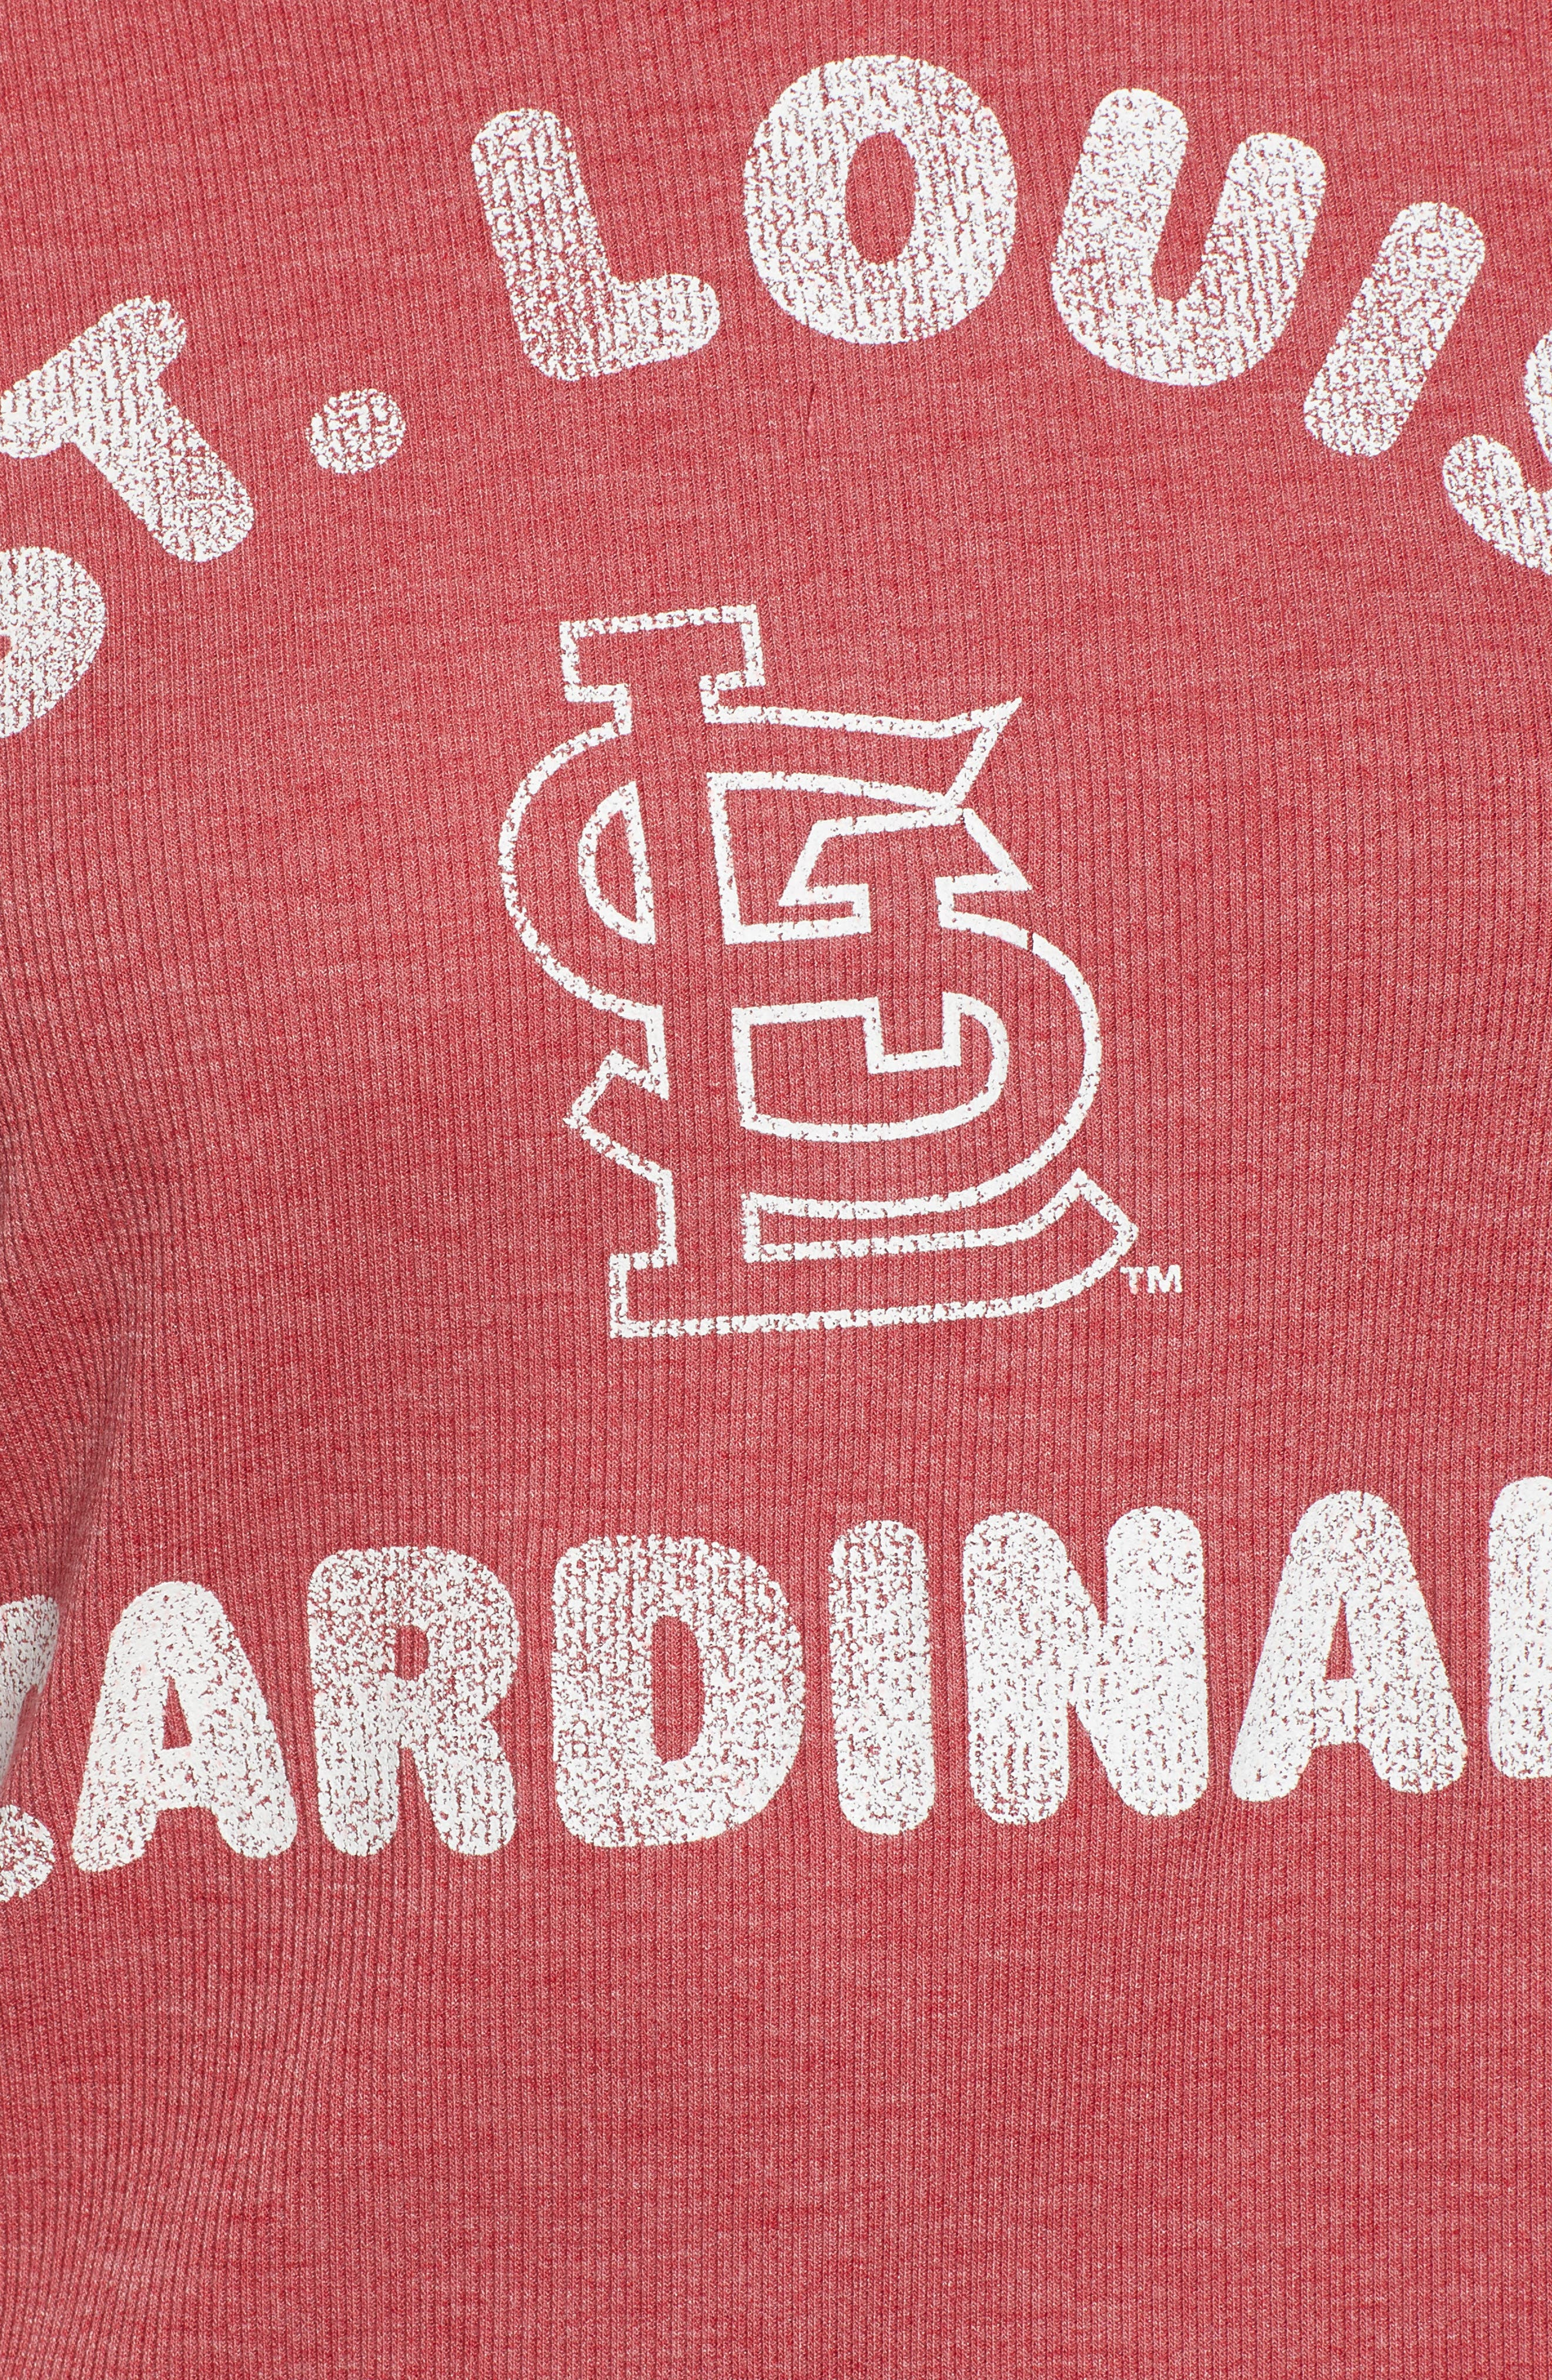 Campbell St. Louis Cardinals Rib Knit Hooded Top,                             Alternate thumbnail 6, color,                             600